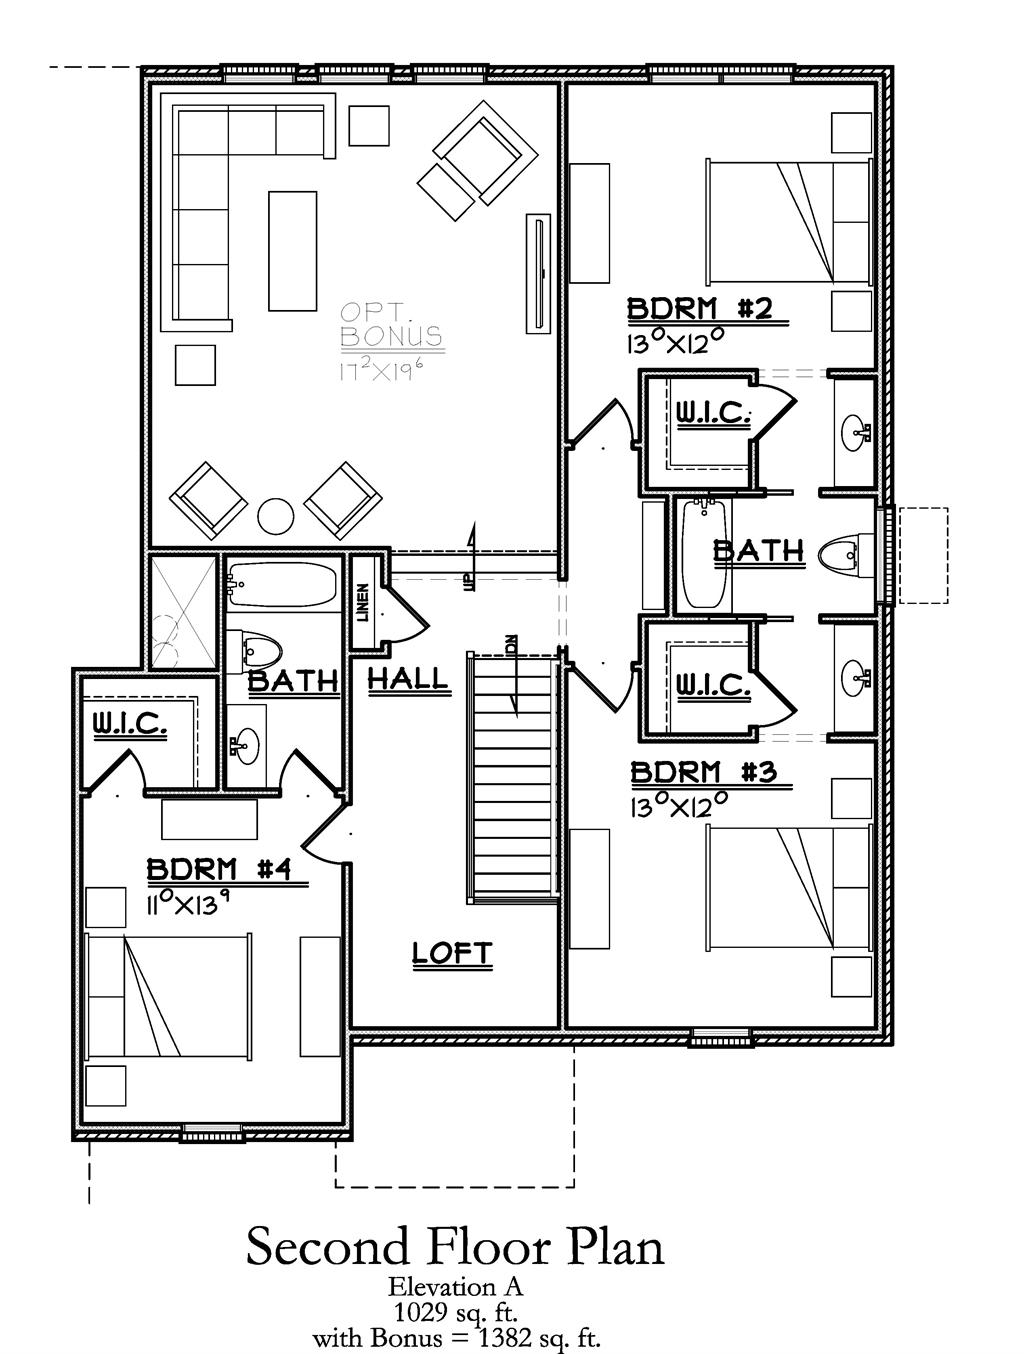 Floor Plan 2 for 4440 Miami Rd Indian Hill, OH 45243